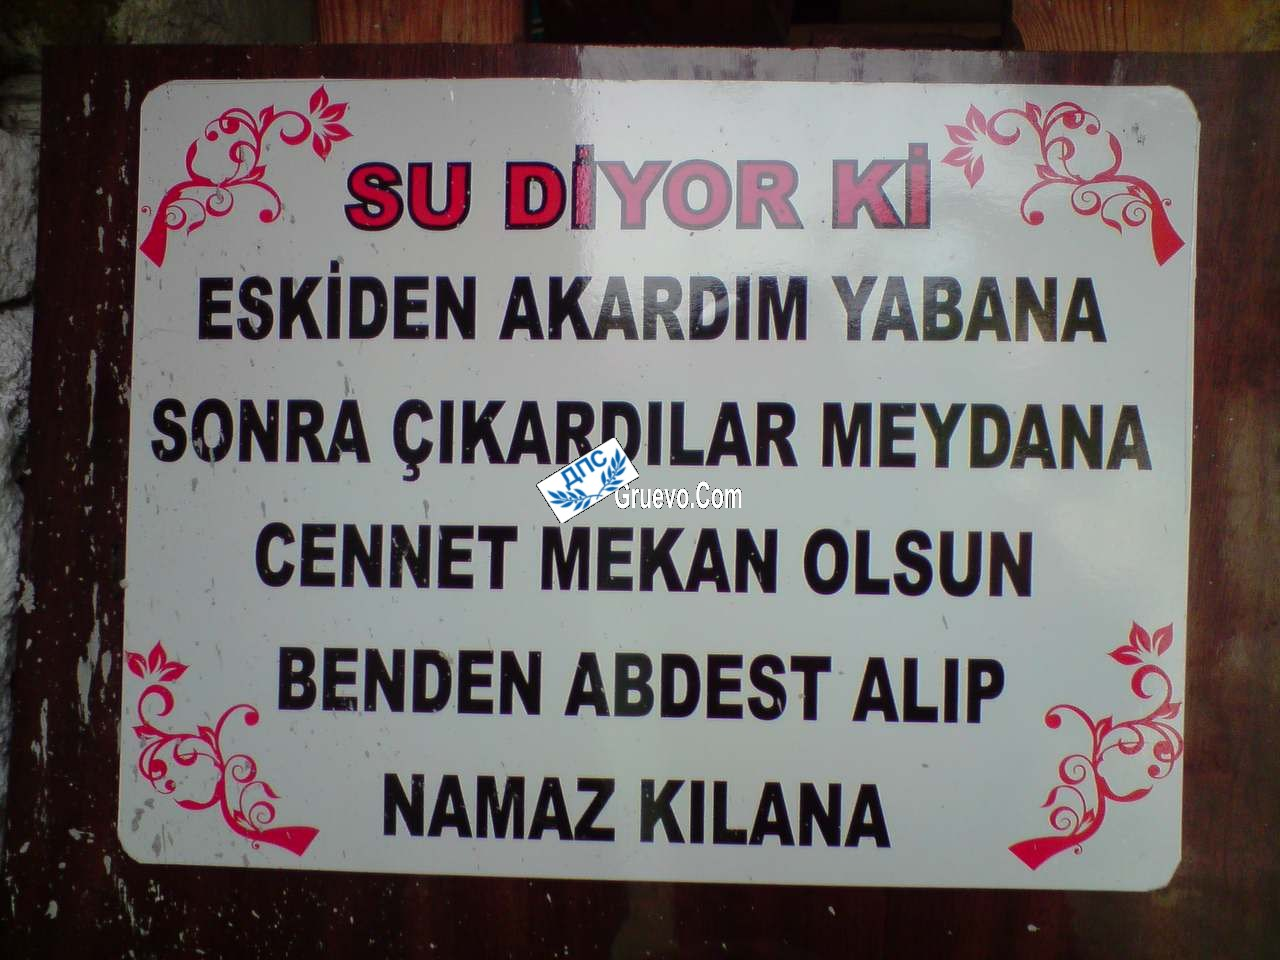 SIKEMLER caamisi